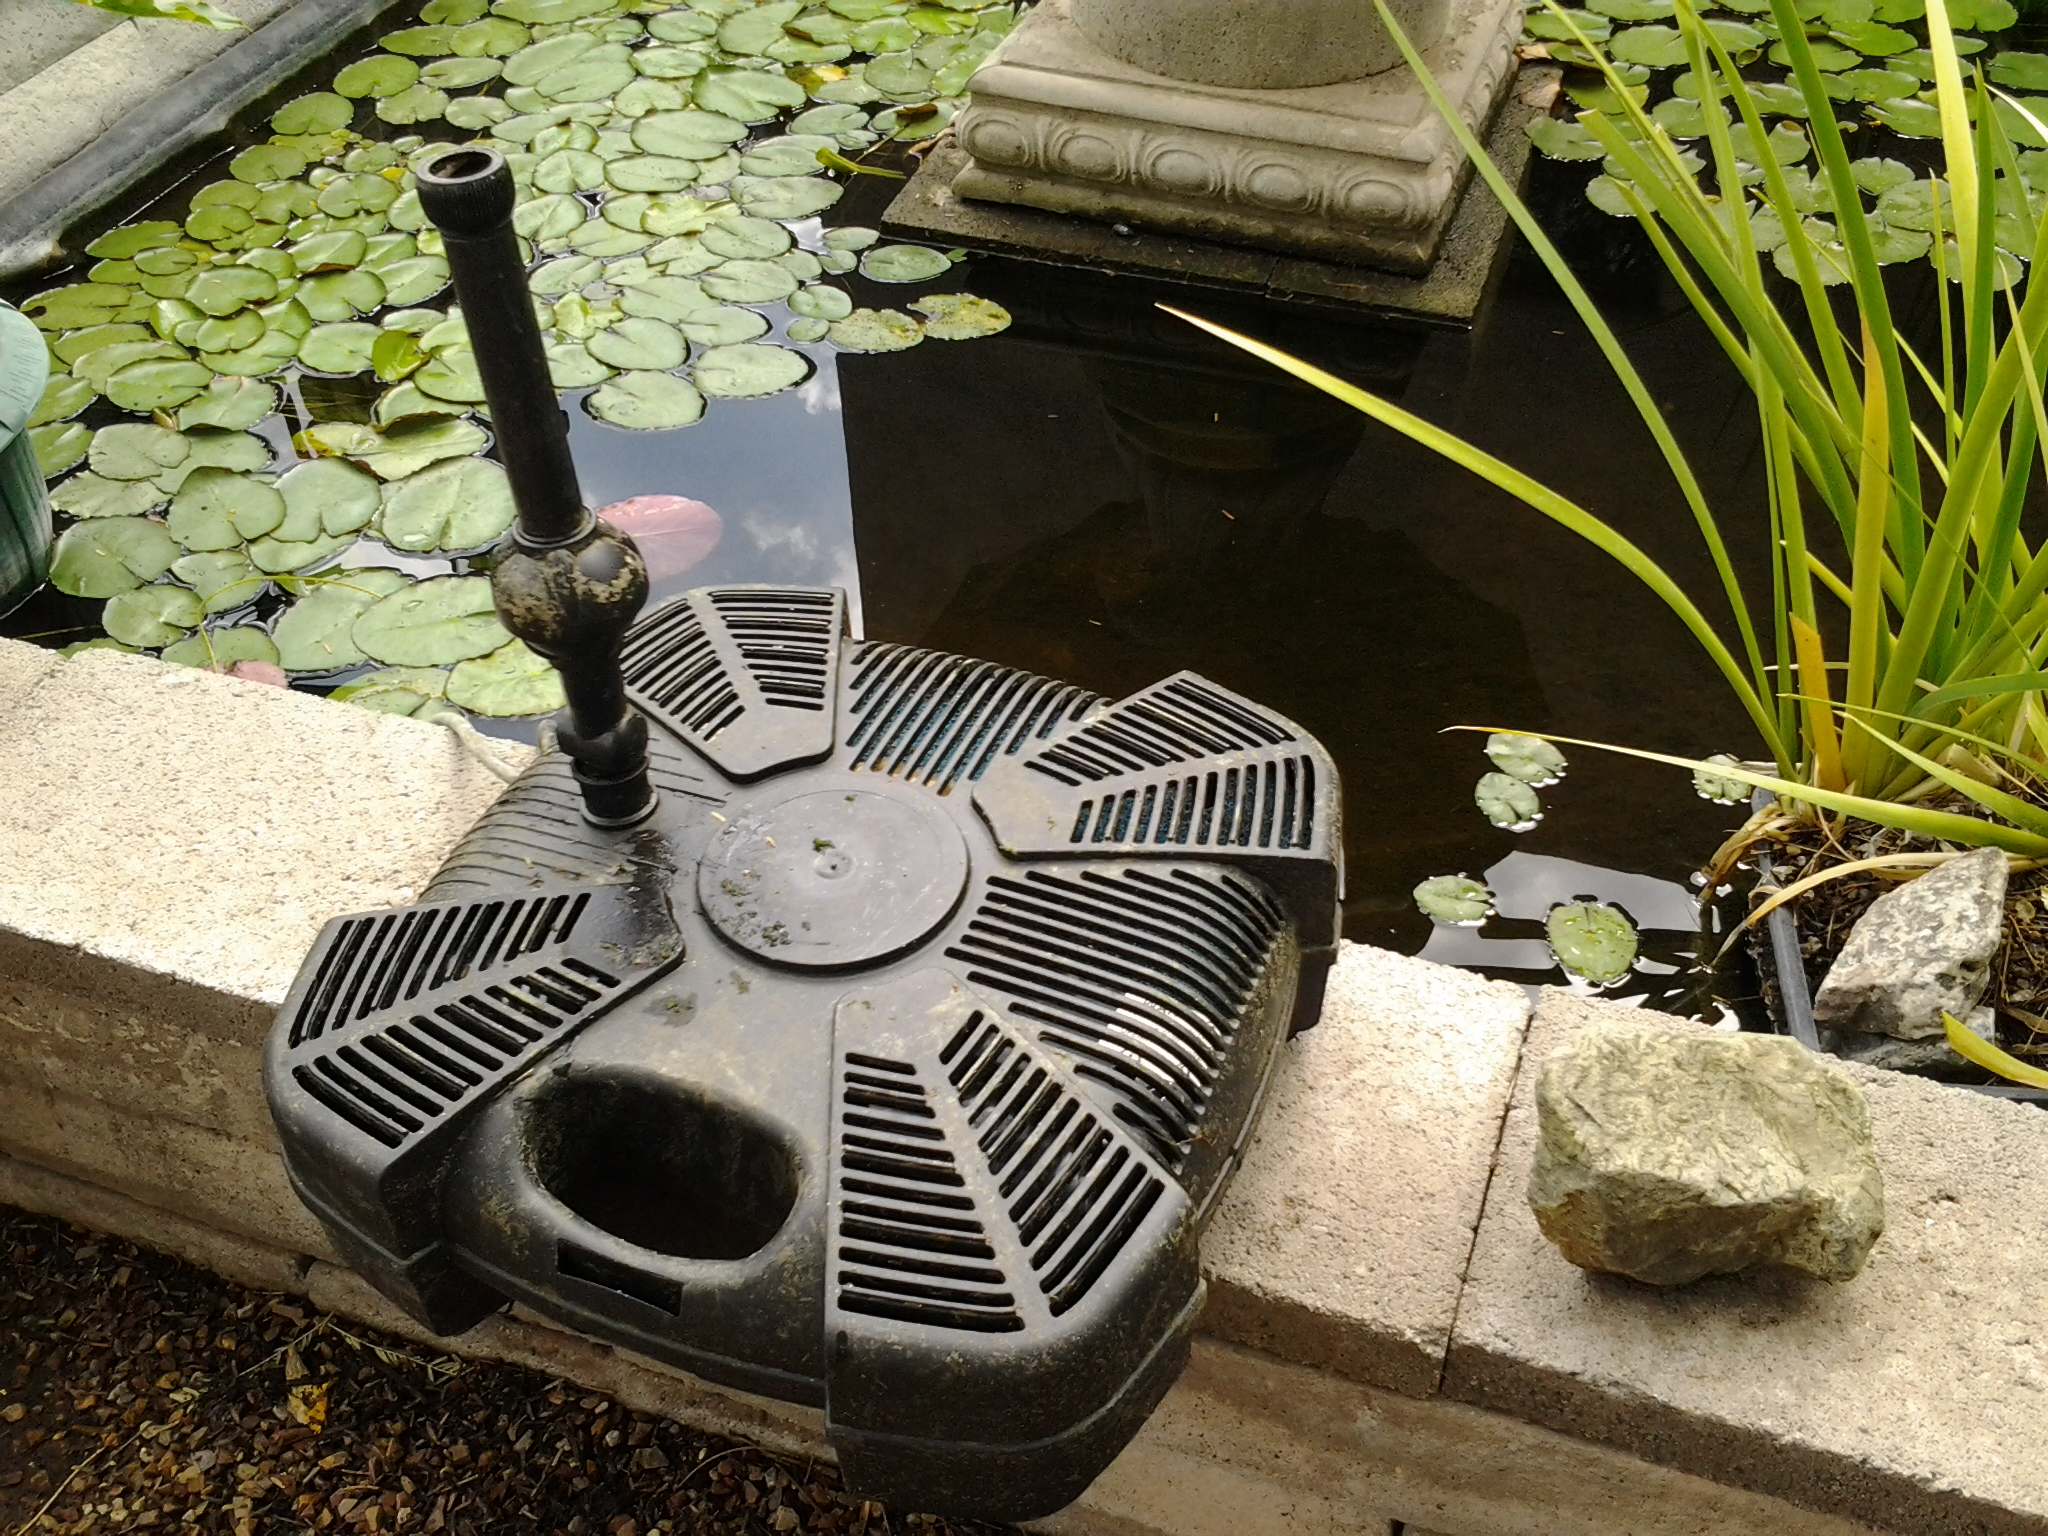 Best pond filter system all in one lifegard pump with uv for Fish pond pumps